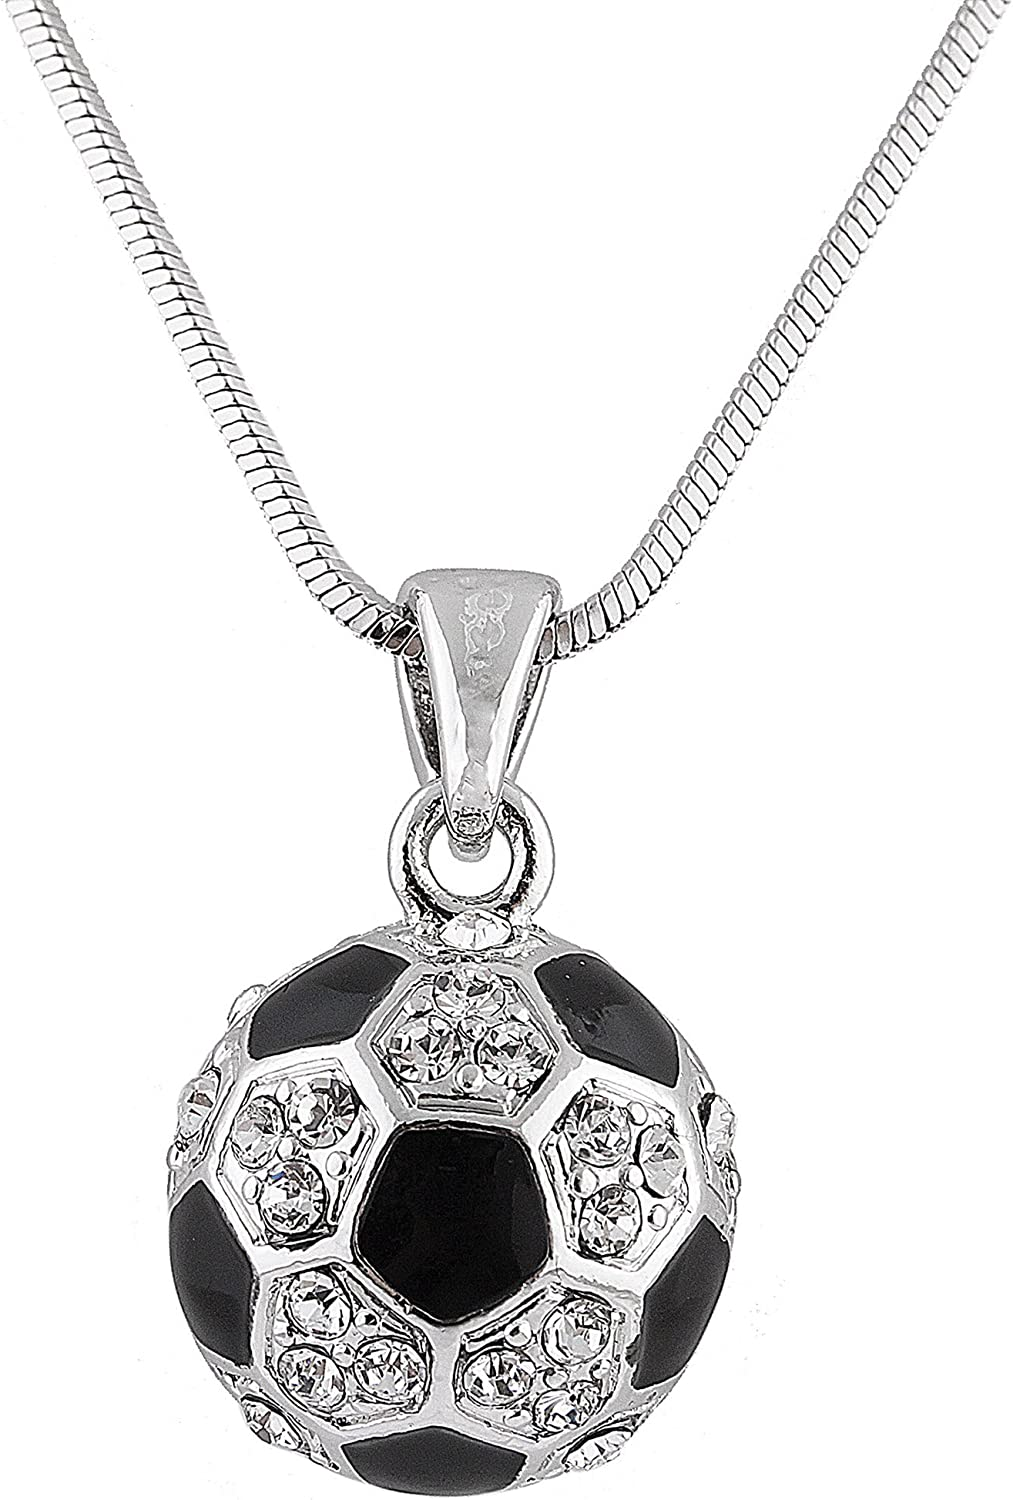 JOTW Silvertone with Black Genuine Free Shipping White Out Ball Limited Special Price Iced Soccer Pendant